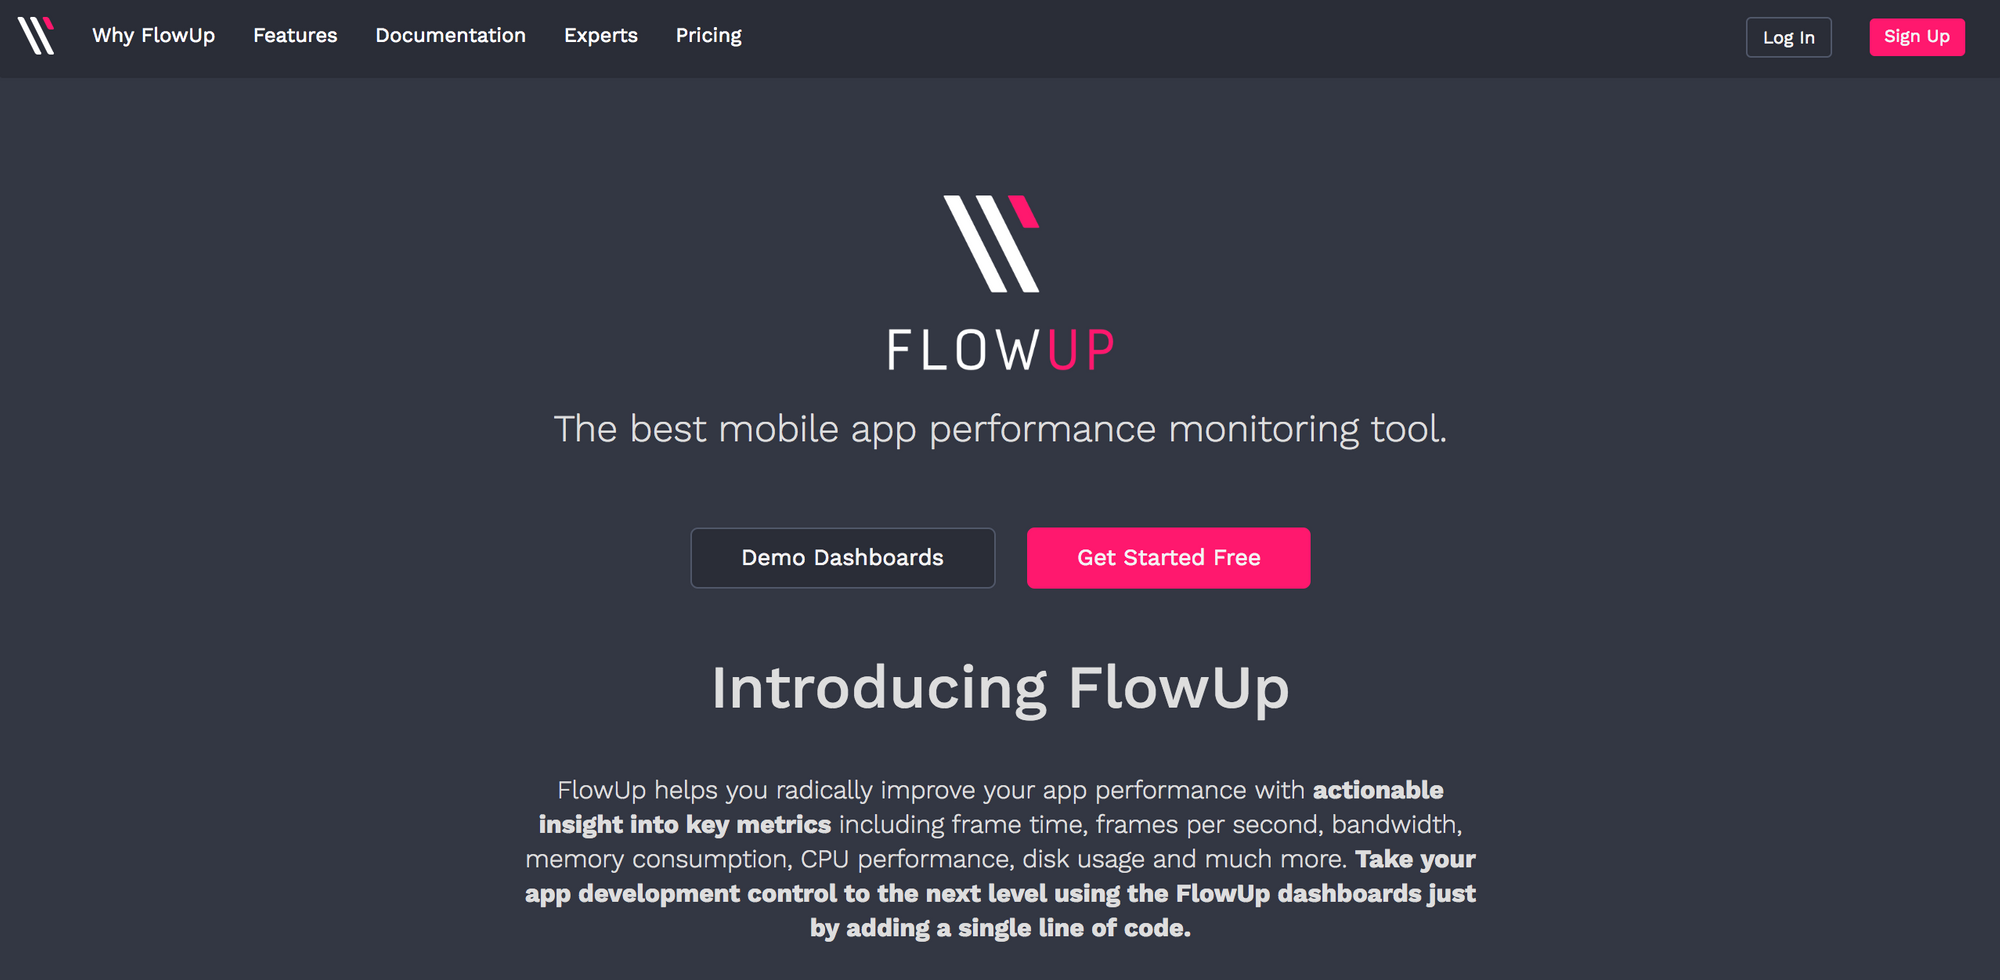 FlowUp:  Announcing a new perspective